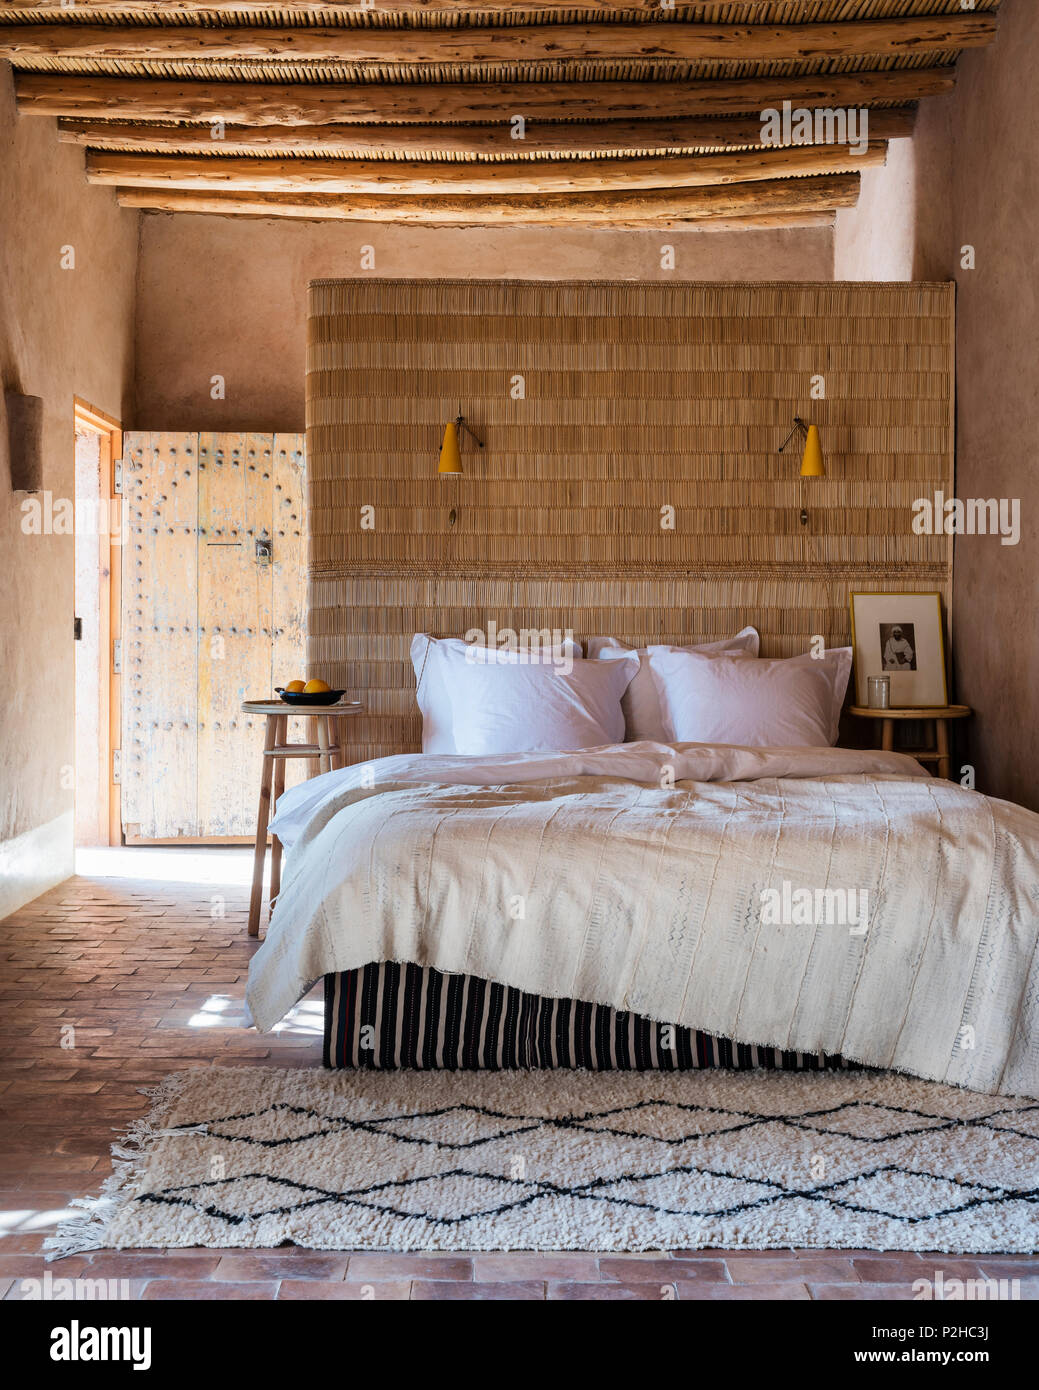 A Rattan Headboard Doubles Up As A Separating Wall In Bedroom With Traditional Wood Berber Ceiling And Terracotta Floors The Beni Ourain Rug Is From Stock Photo Alamy